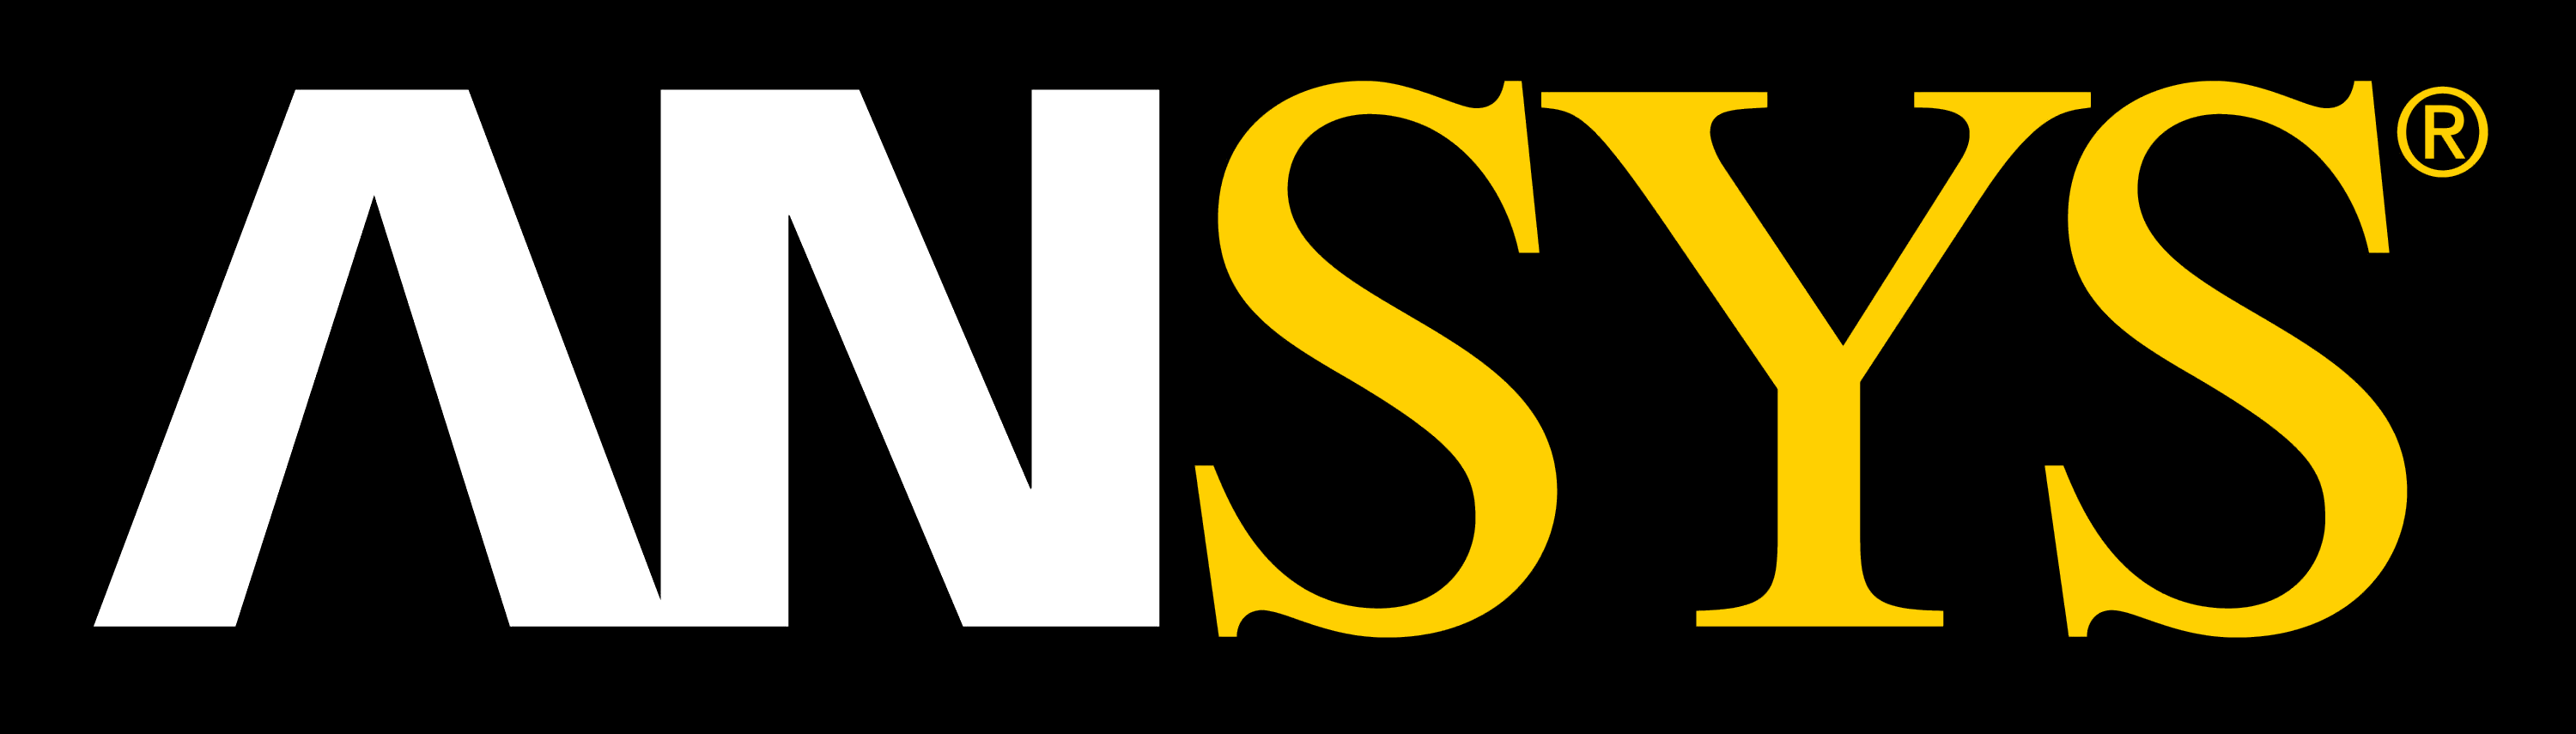 File:ANSYS logo.png.